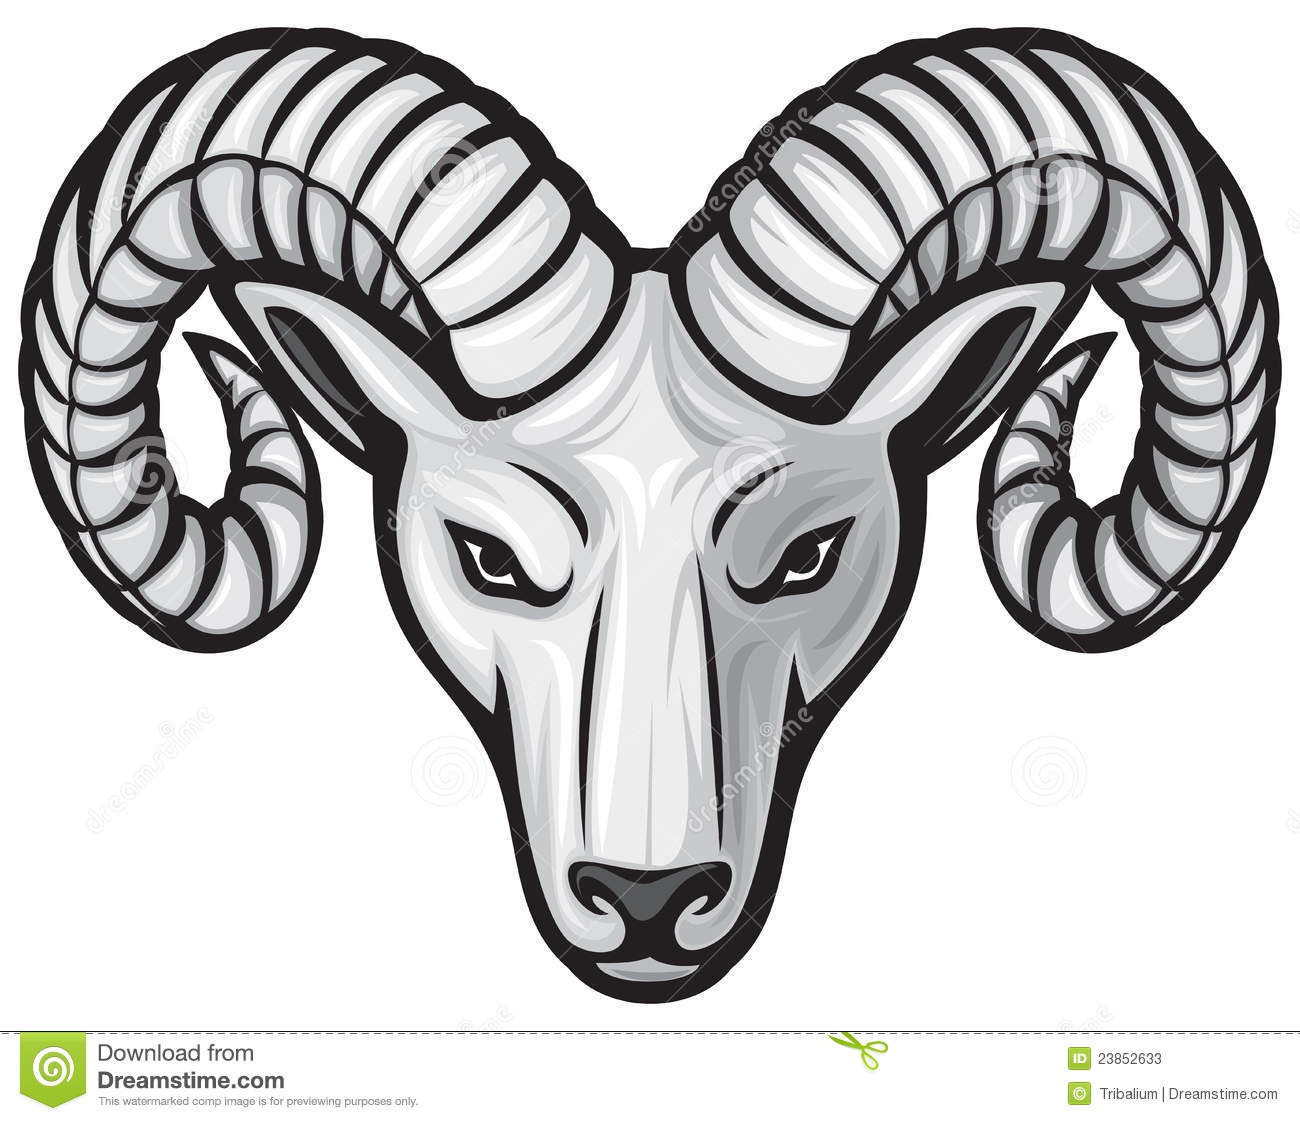 Artistic ram head clipart black and white clip art download Ram Head Stock Photos - Image: 23852633 clip art download